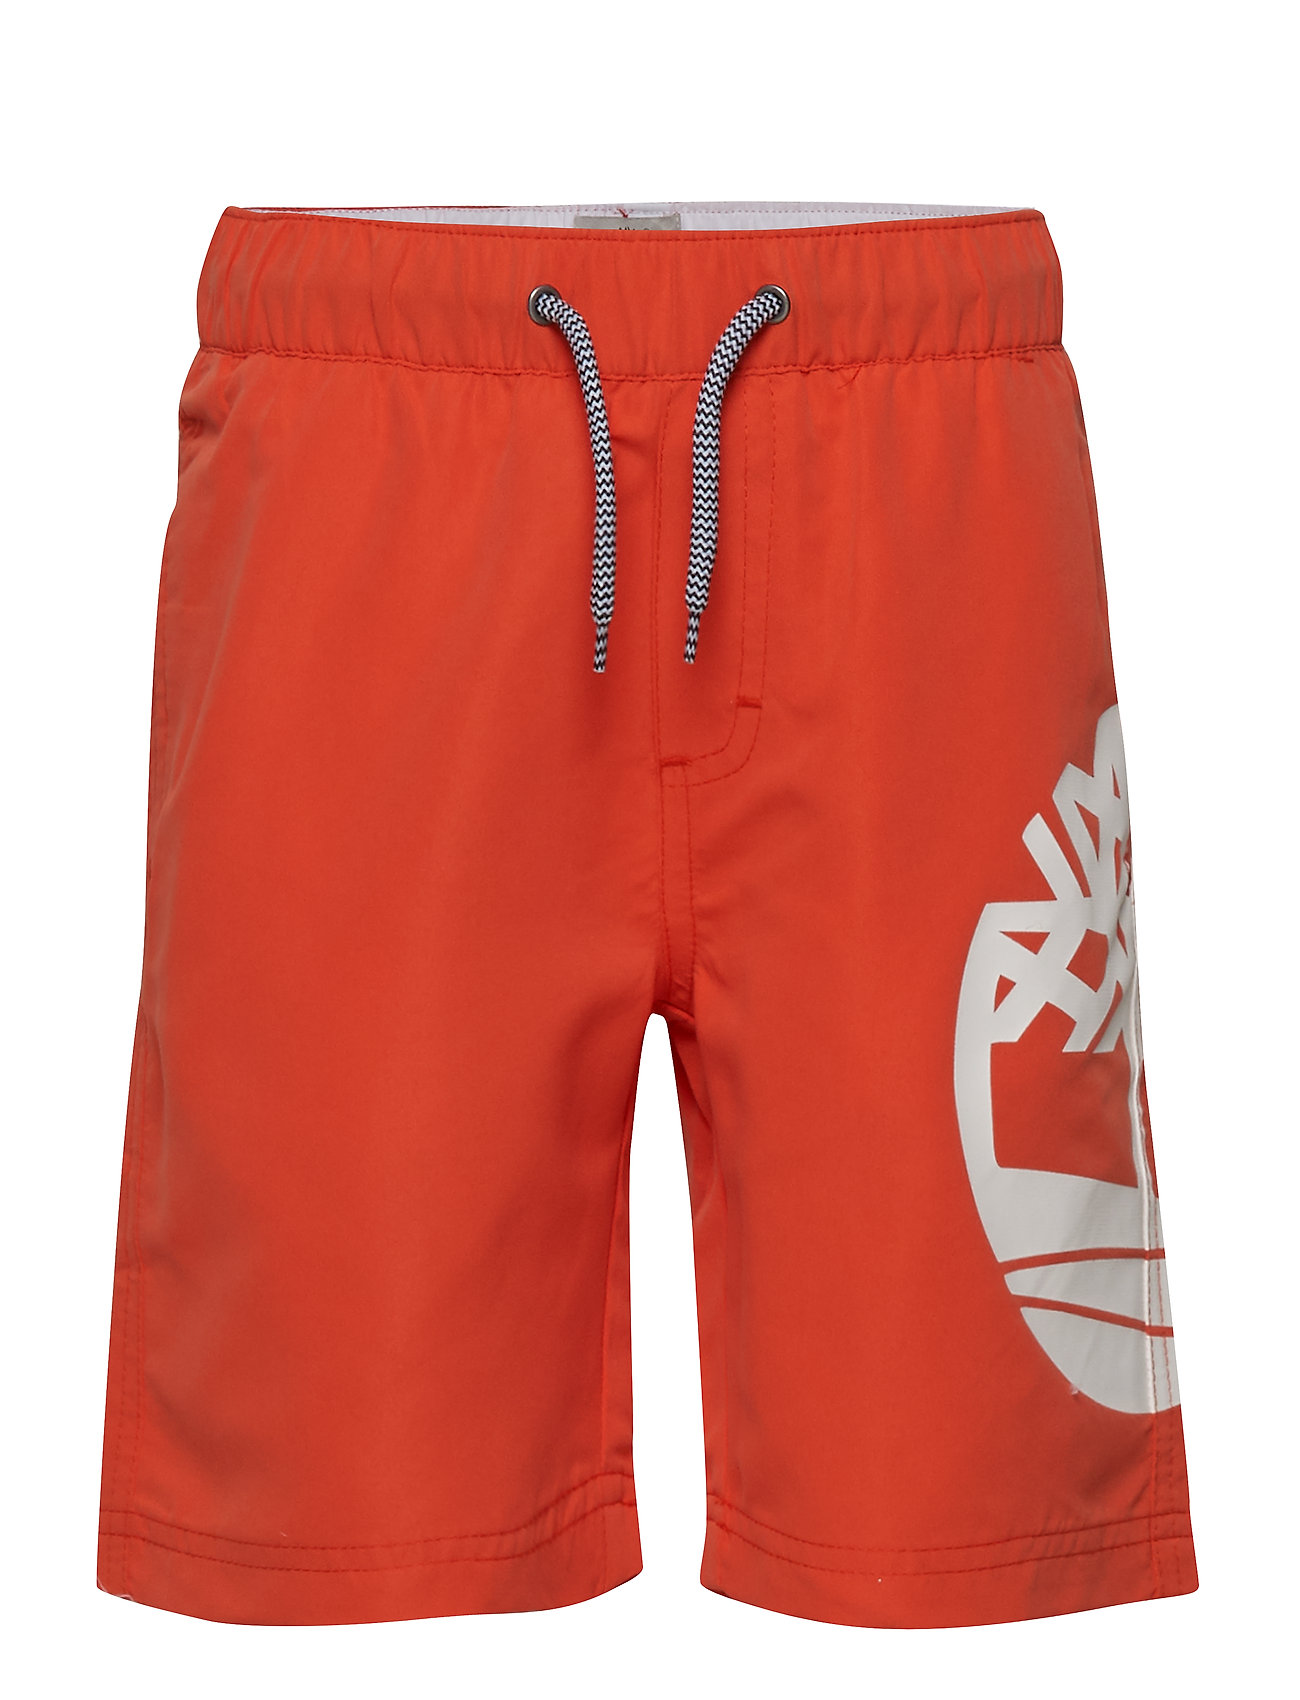 Timberland SWIM SHORTS - ORANGE